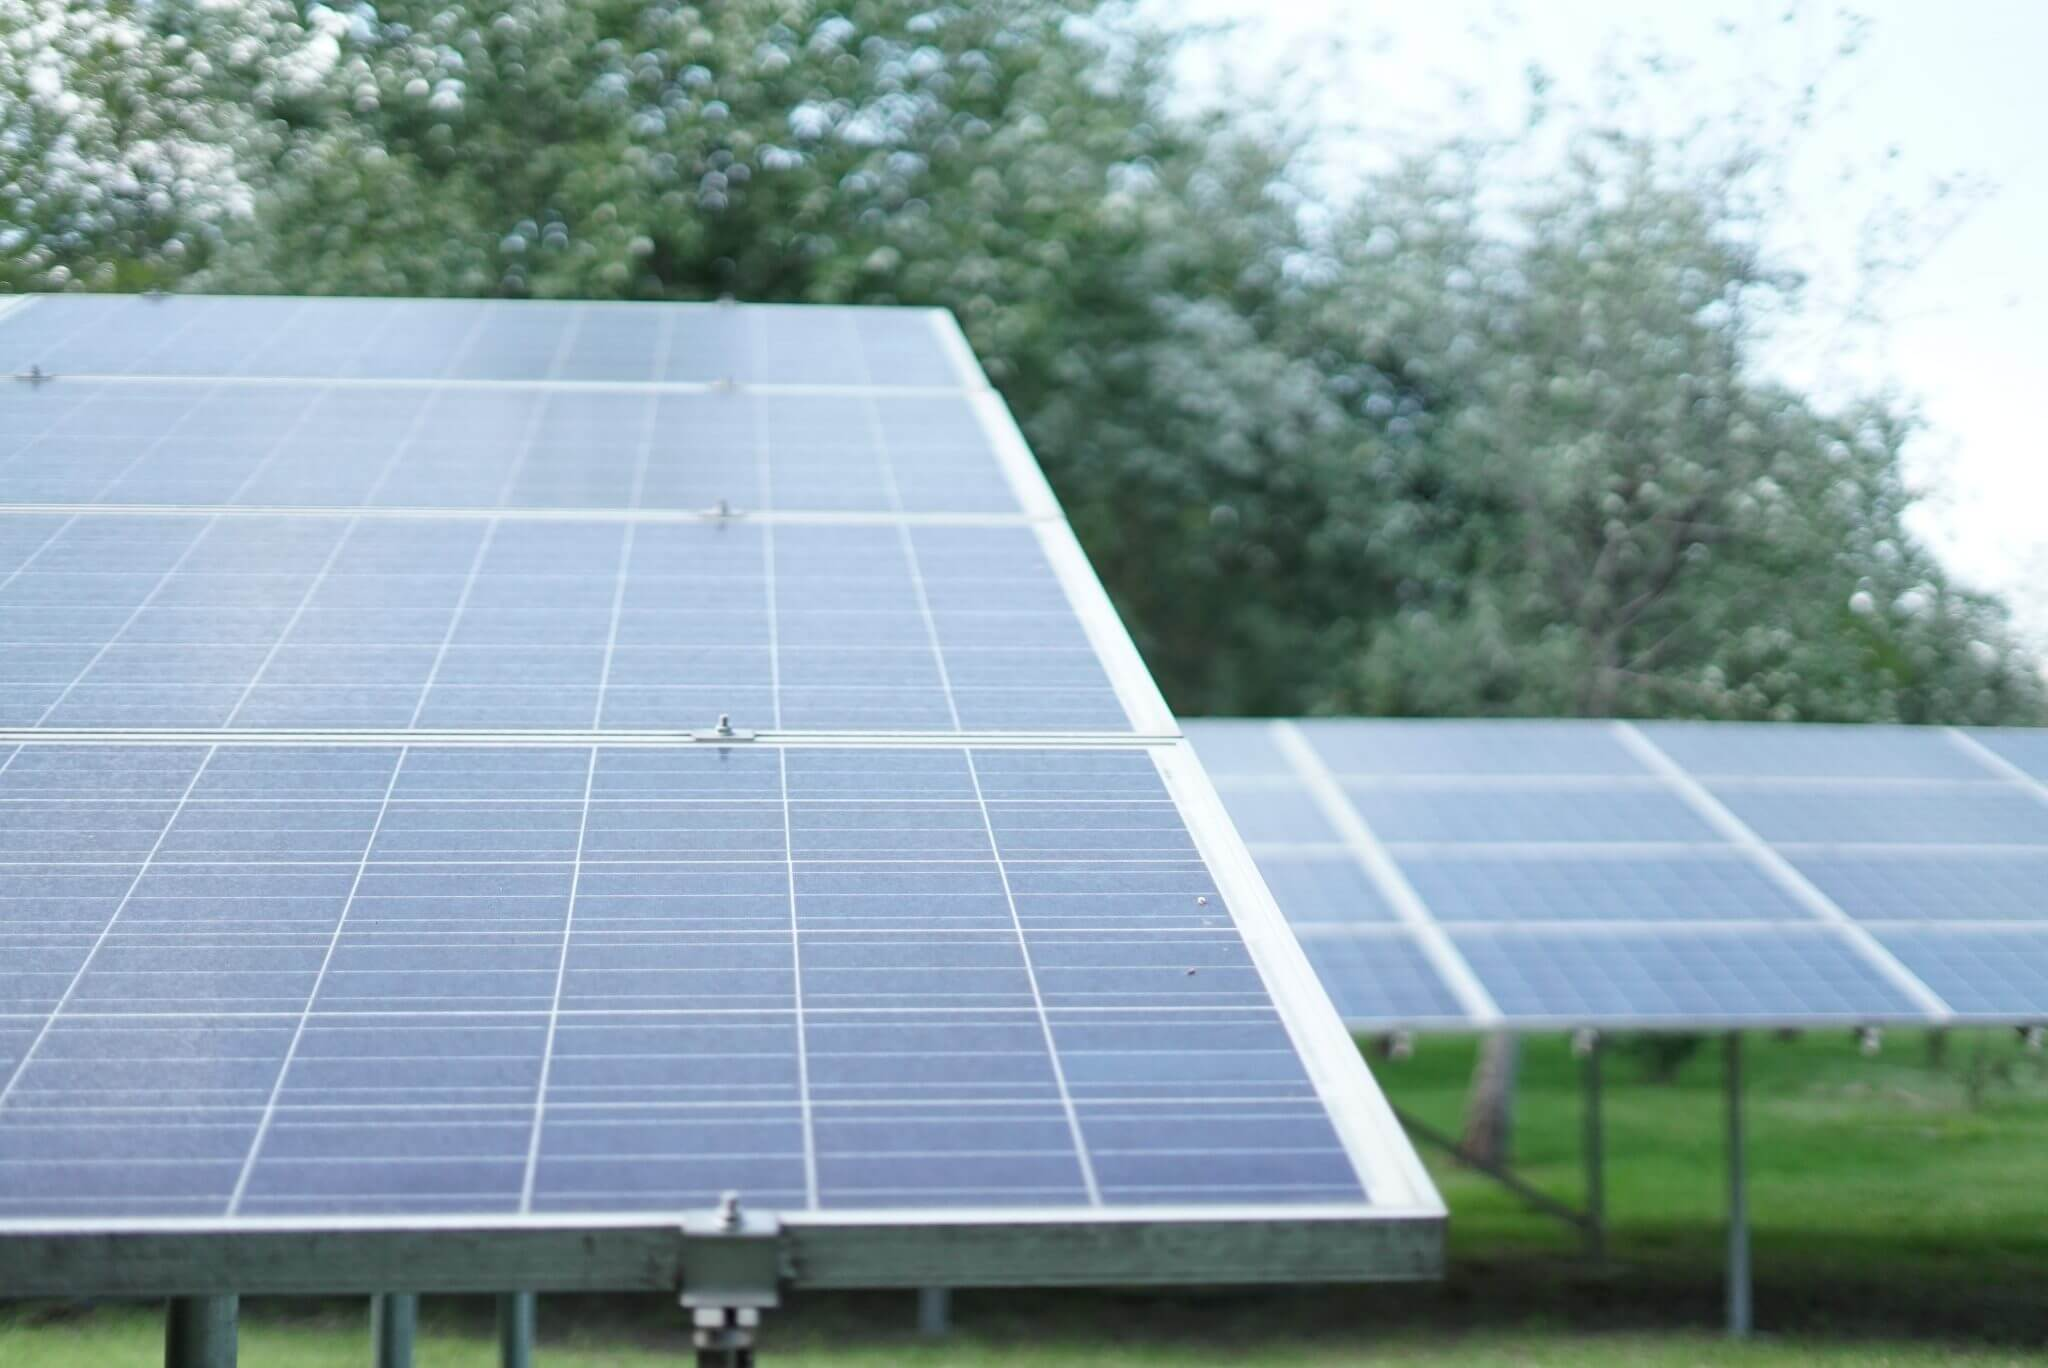 Solar Panels are a key part of your system and help convert light into electricity.